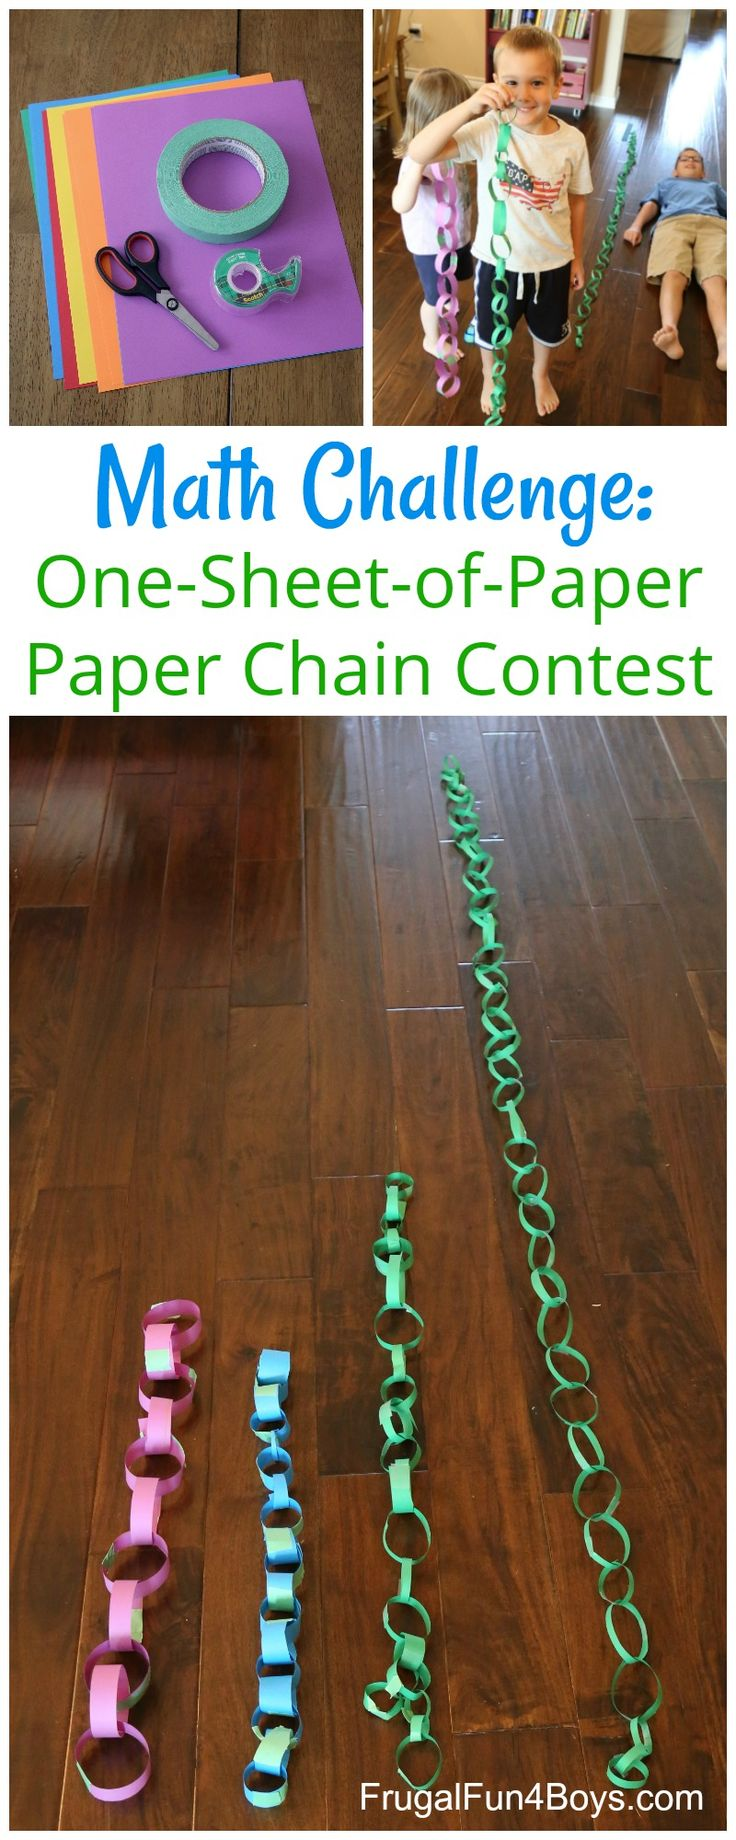 STEM Challenge: One-Piece-of-Paper Paper Chain Contest. Fun math activity for kids!